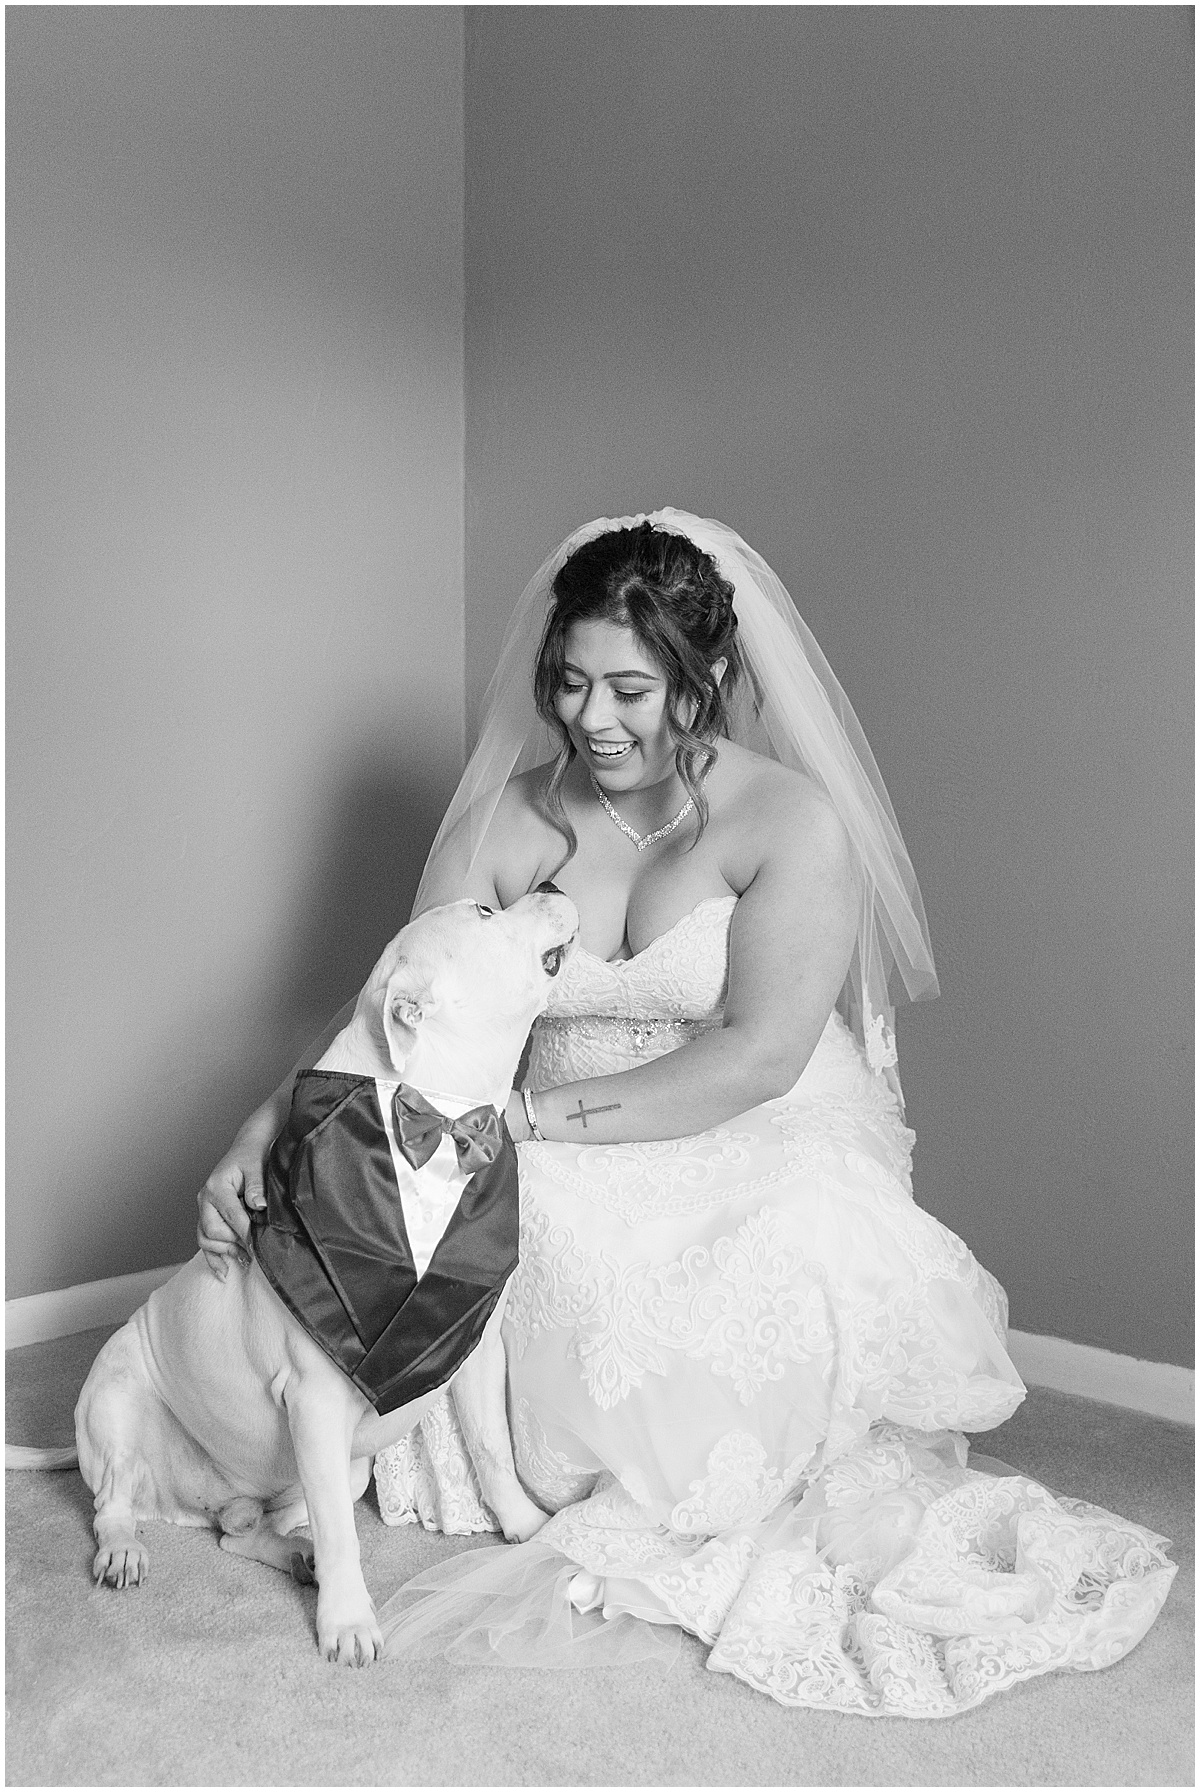 Bride with dog on wedding day in Frankfort, Indiana